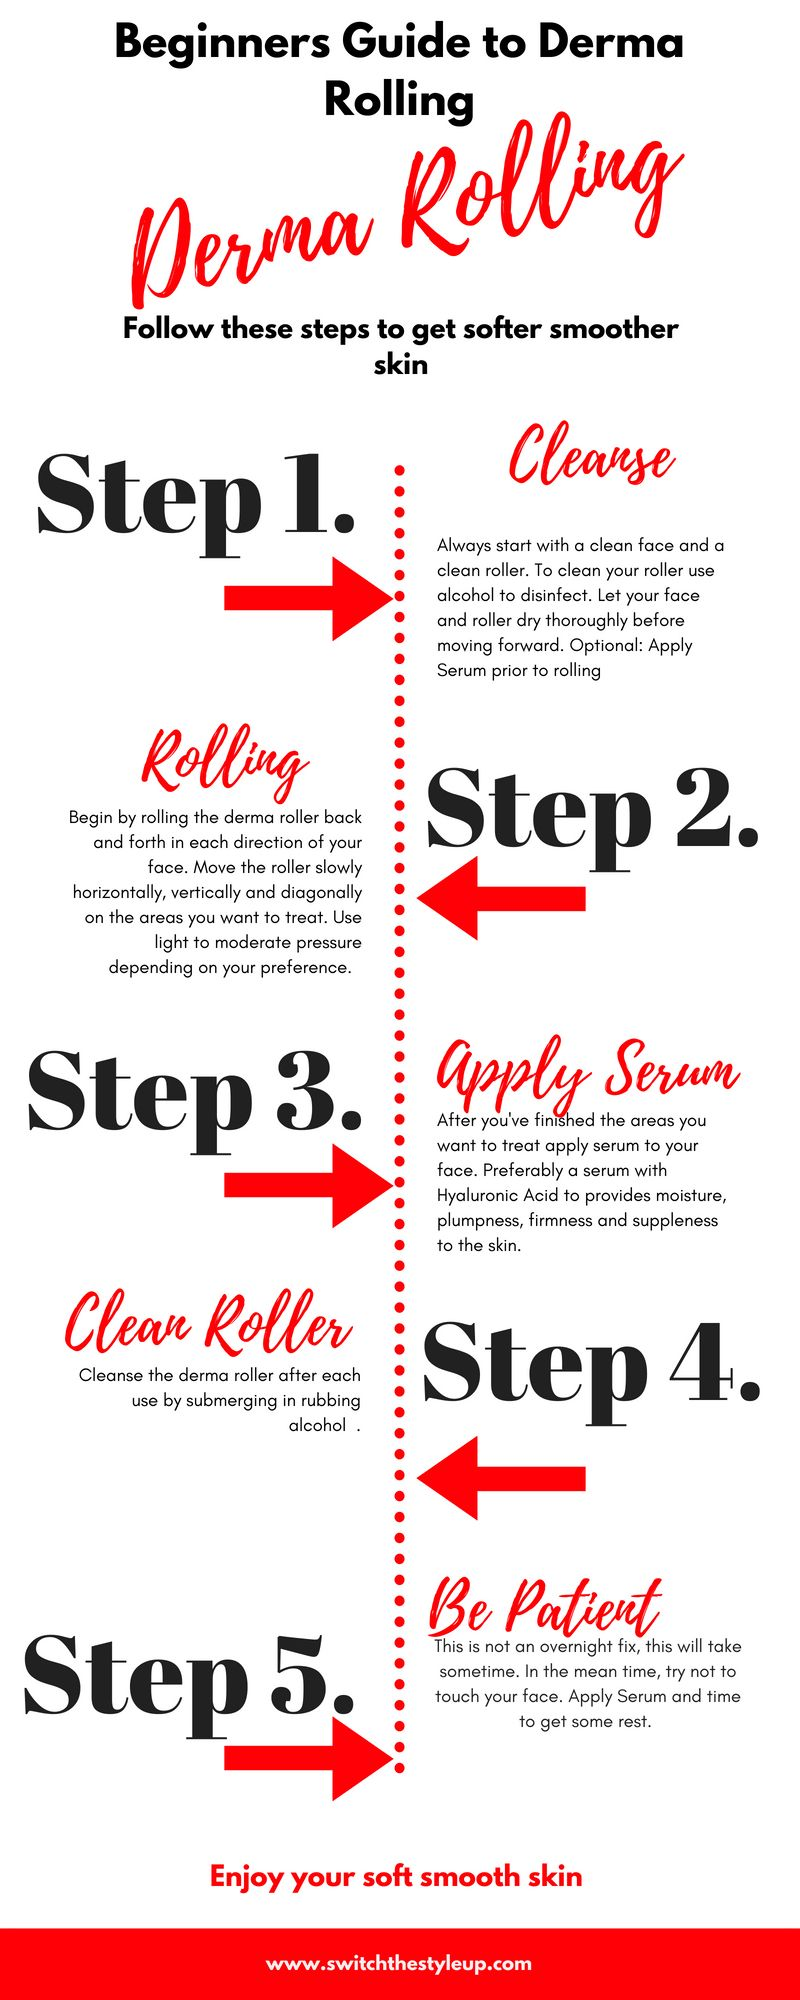 Complete Guide To Derma Rolling For Beginners Switch The Style Up Derma Rolling Skin Skin Moisturizer